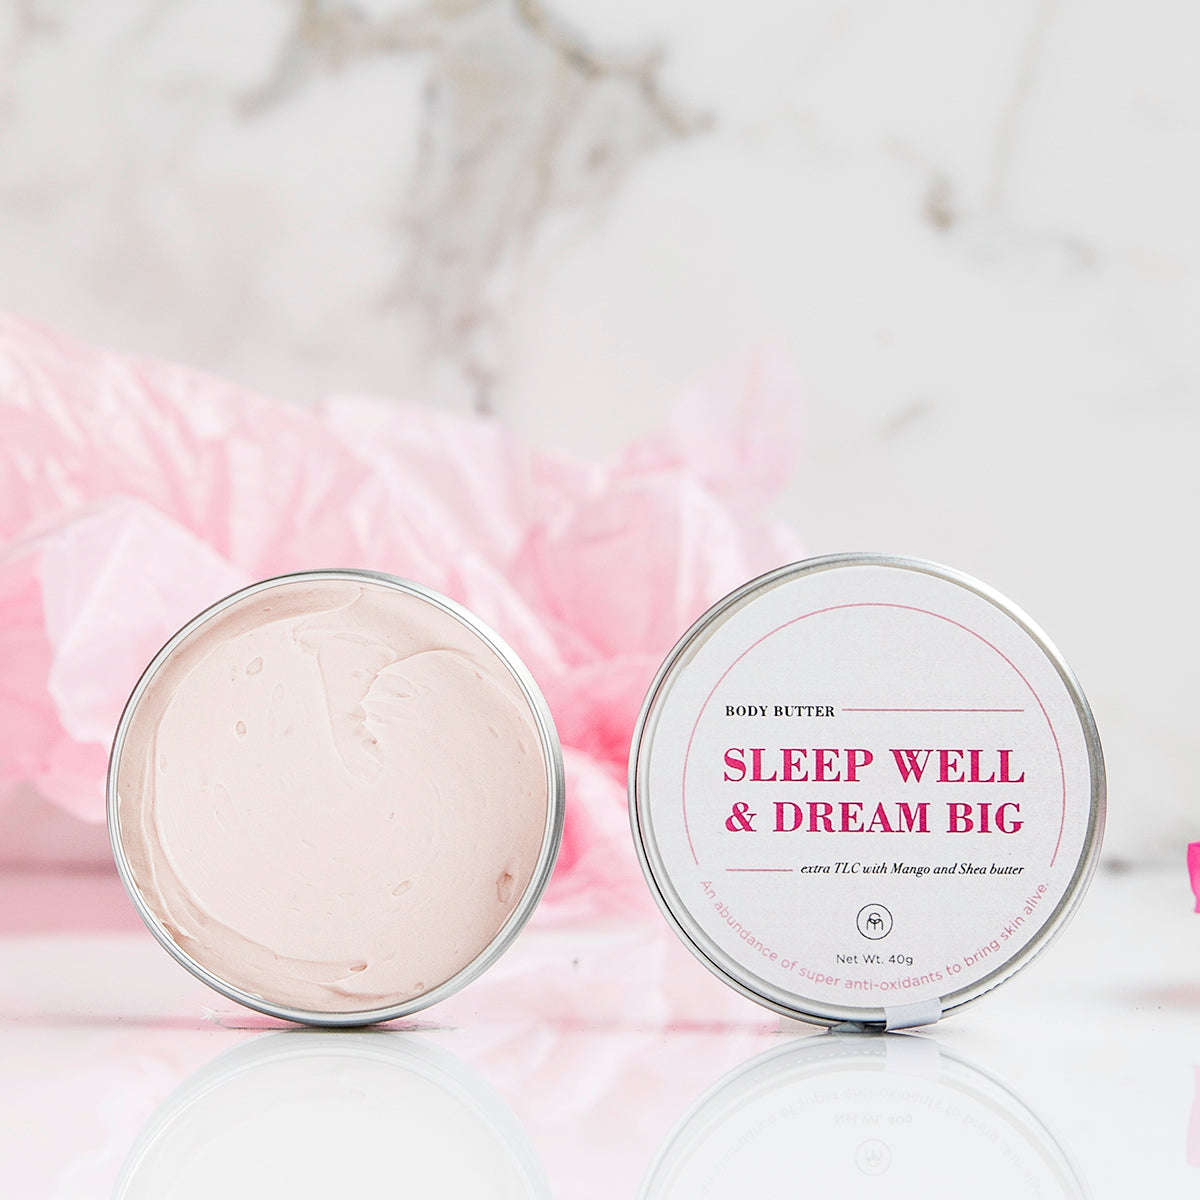 Sleep Well Coconut Body Butter